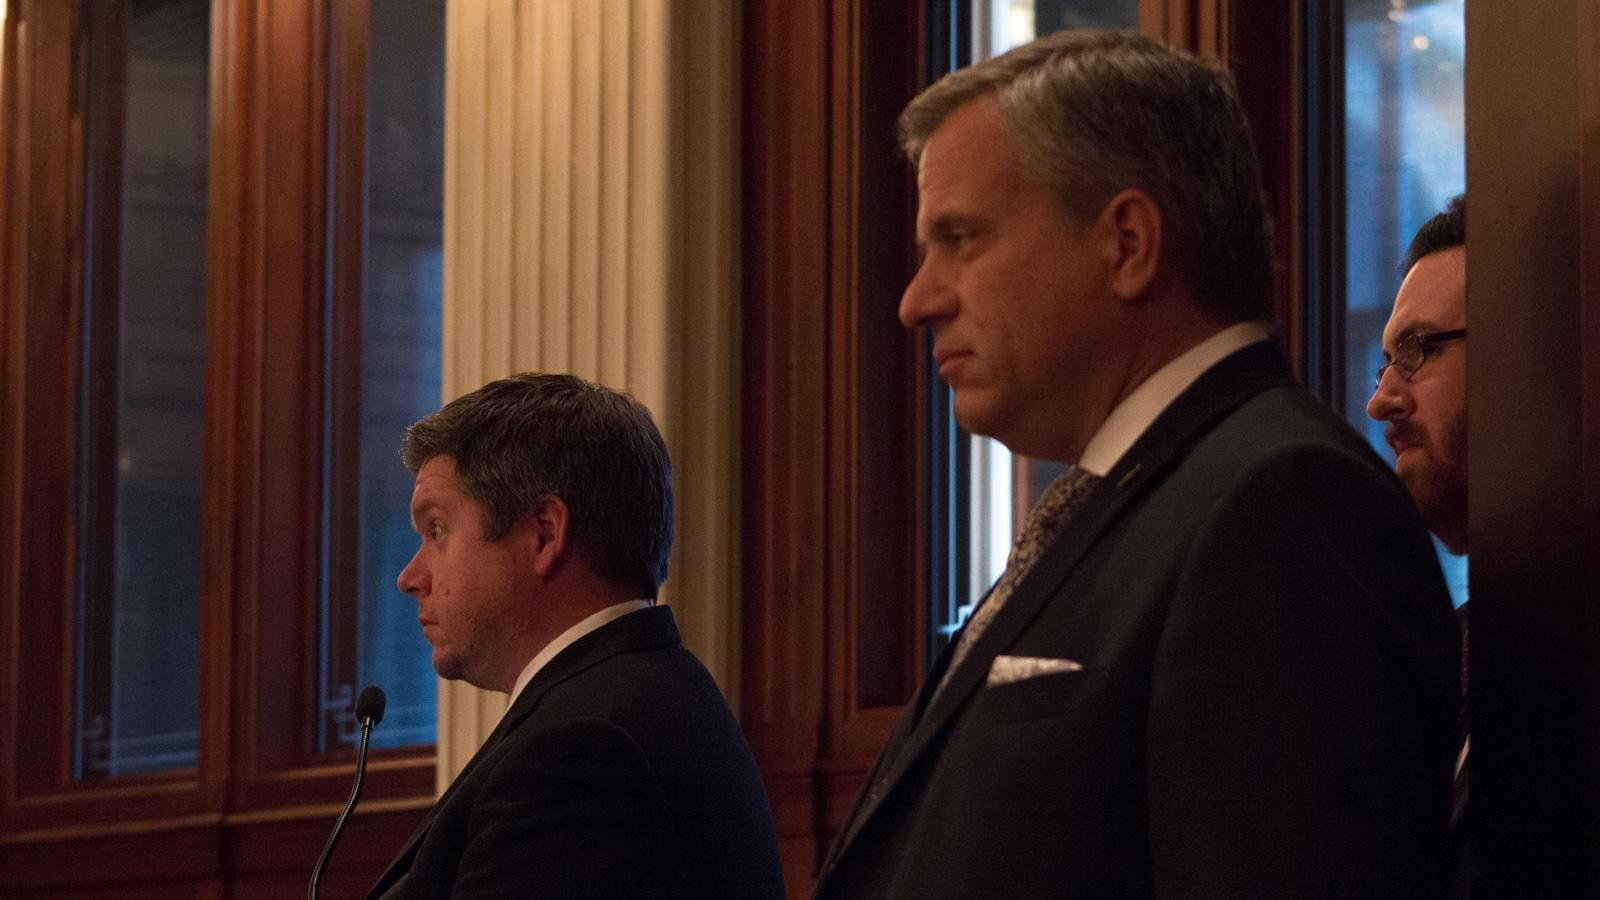 Democratic state Reps. Mike Zalewski, left, and Rob Martwick listen to Republicans criticize a Democratic plan to move Illinois from a flat income tax to a graduated tax.